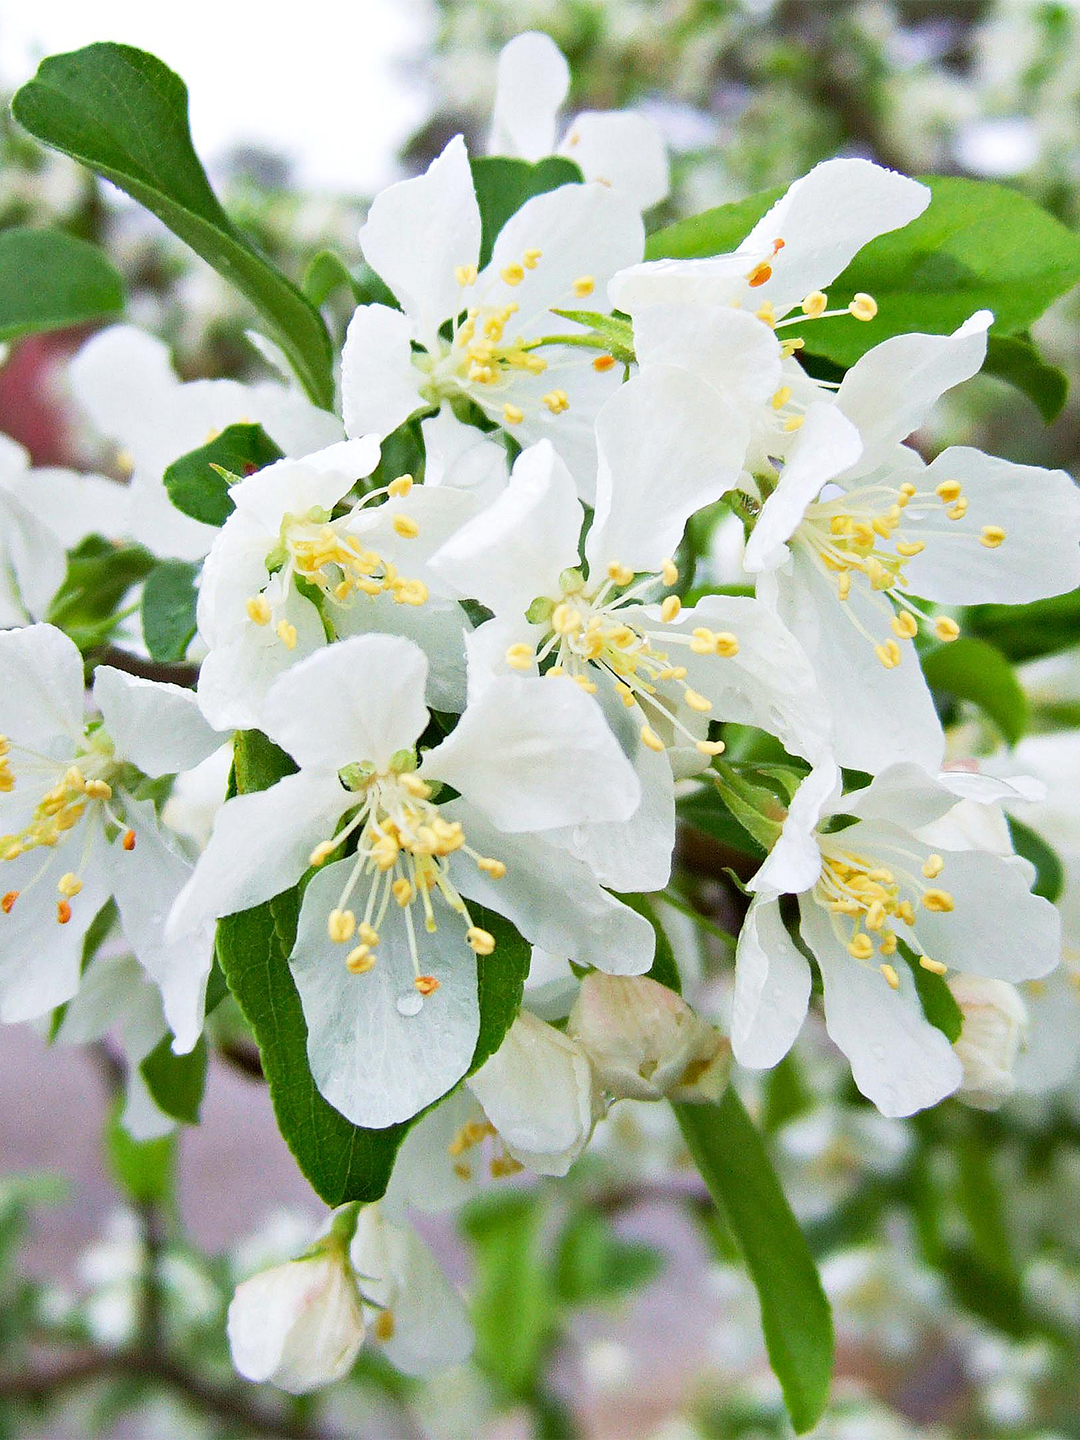 Red Jewel crabapple blooms white and yellow flowers